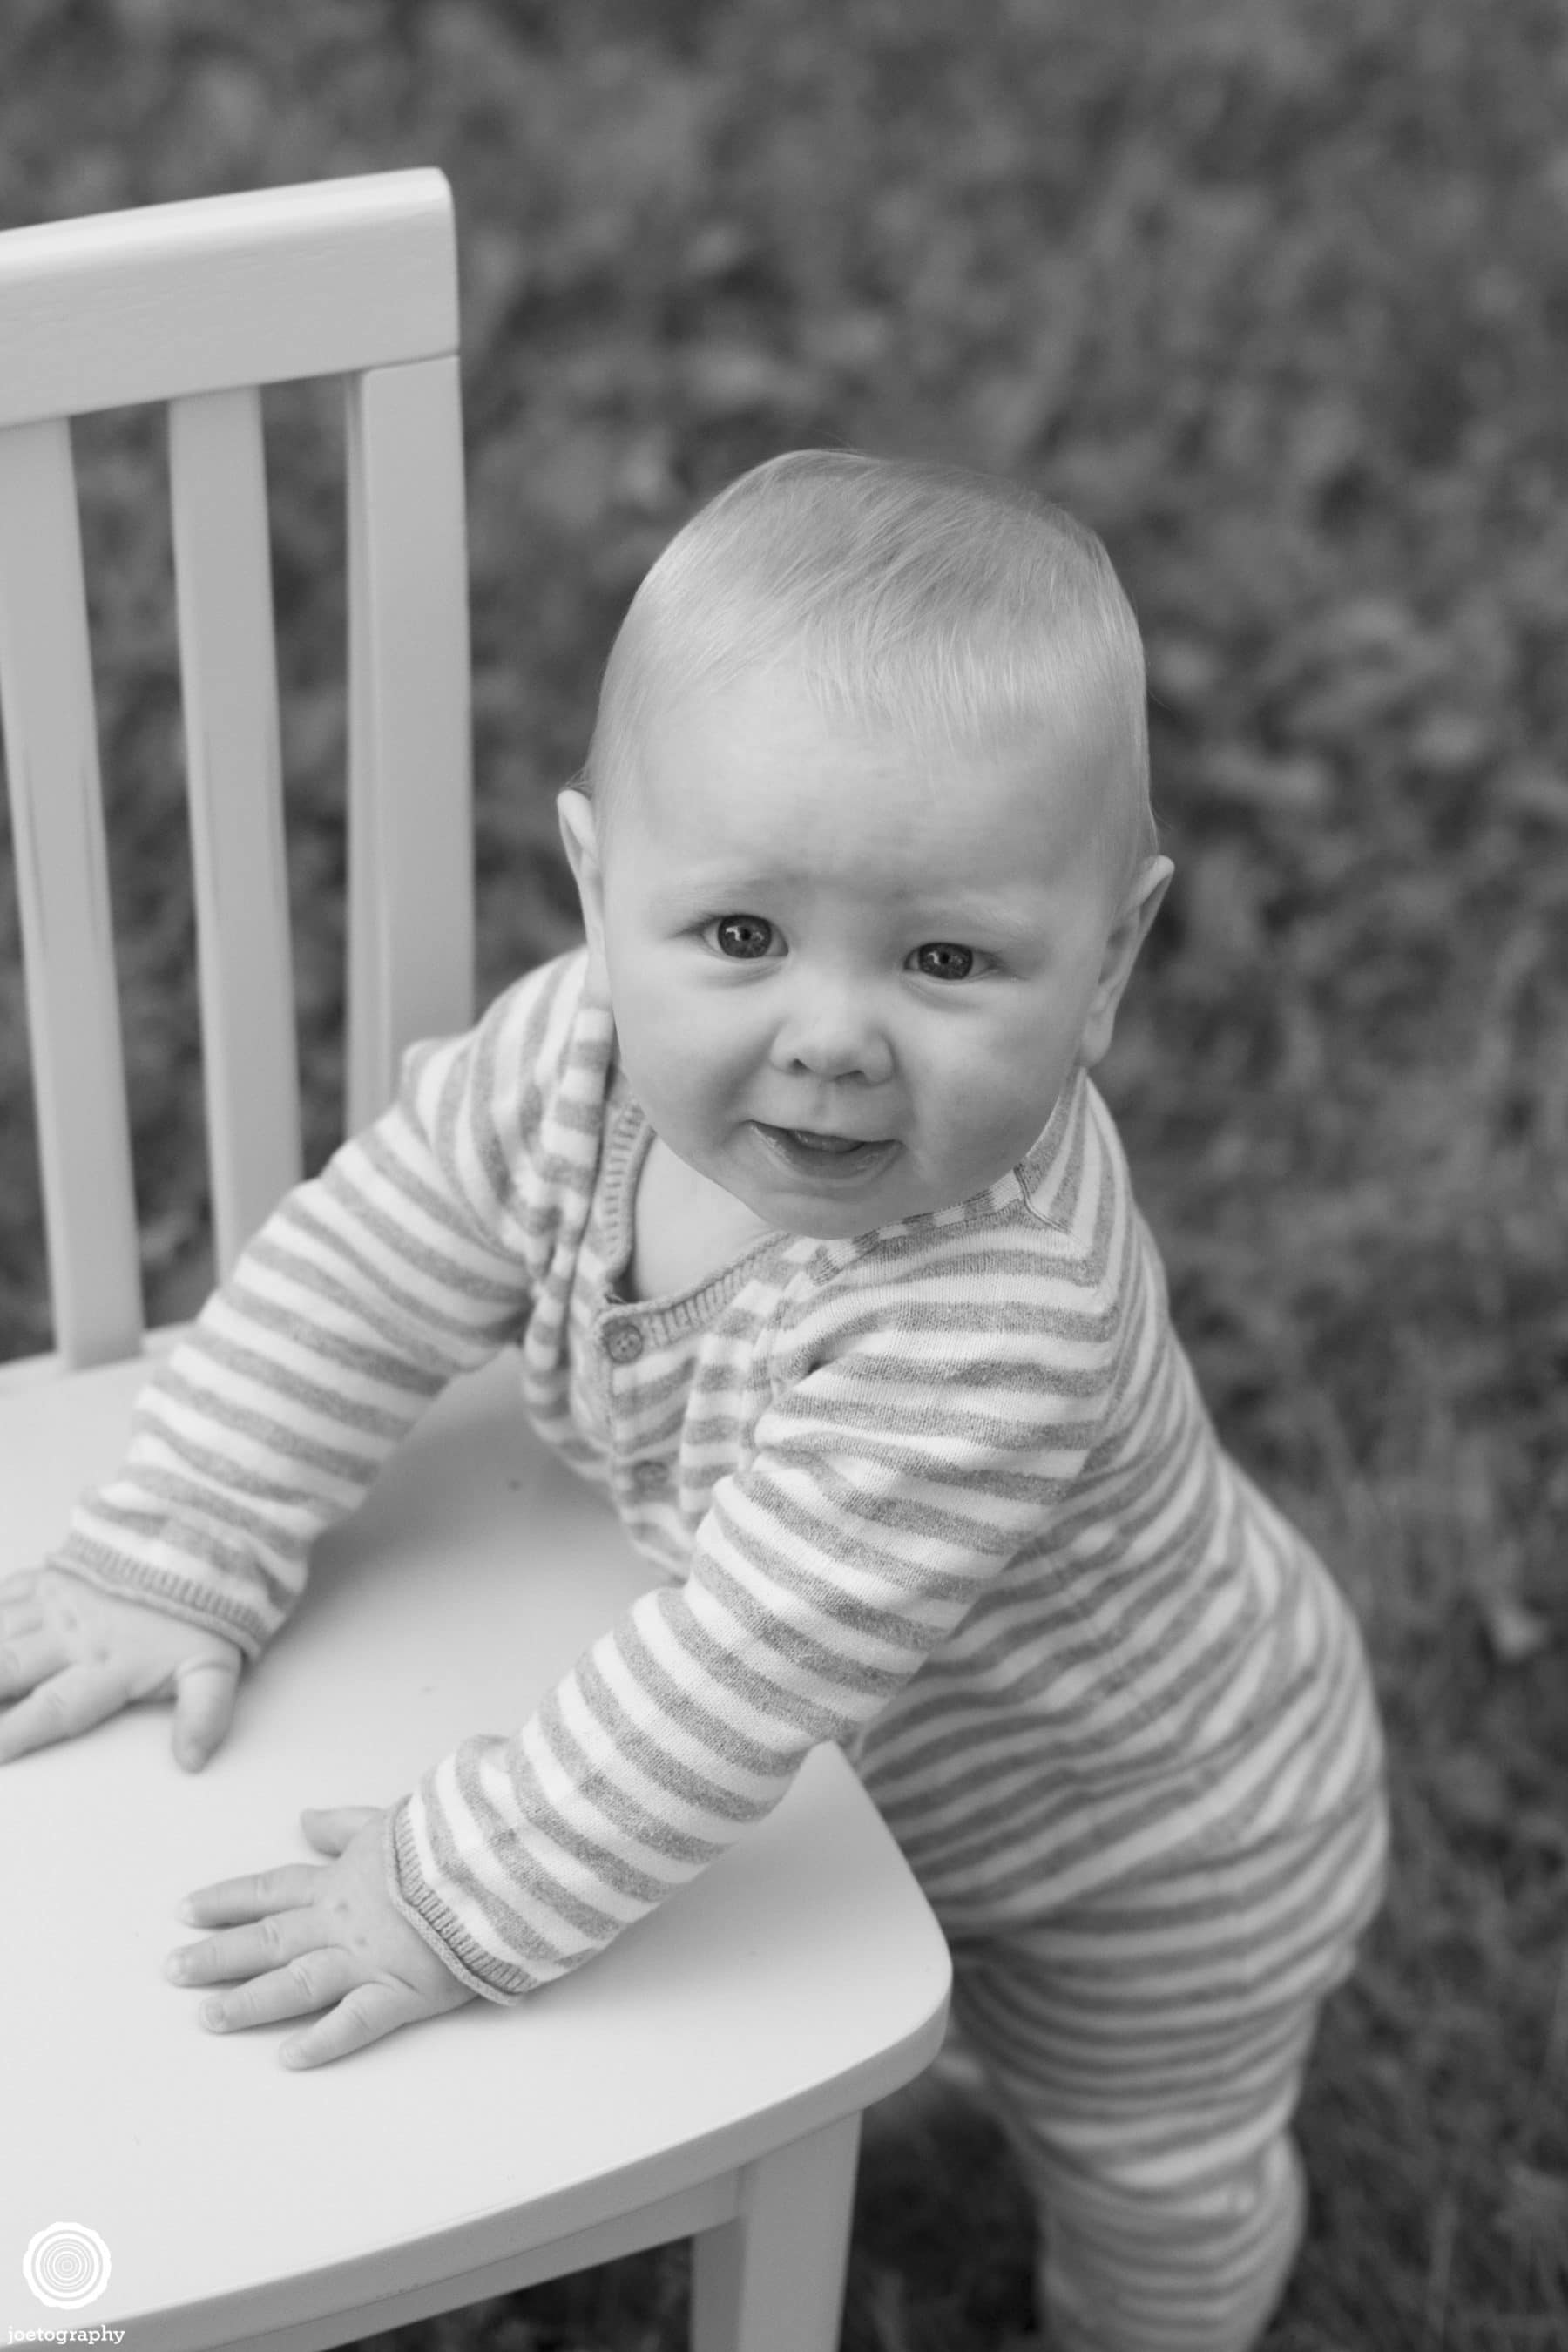 chandler-newborn-photography-indianapolis-blink3-67